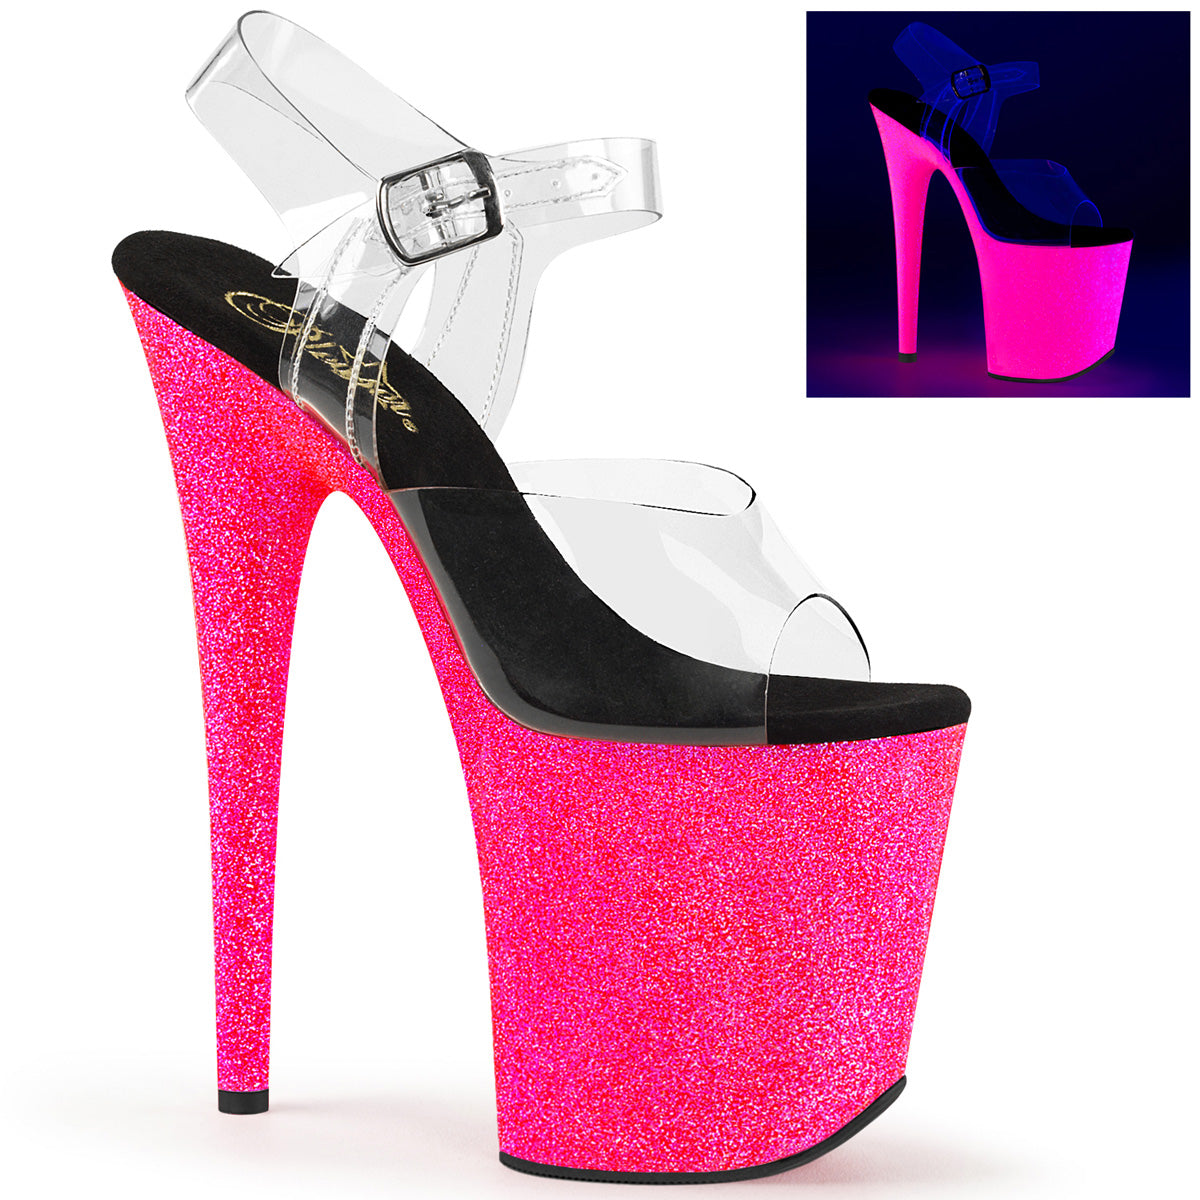 f74cea2842b FLAMINGO-808UVG Pleaser Sexy Shoes Neon Glitter Strippers Ankle ...